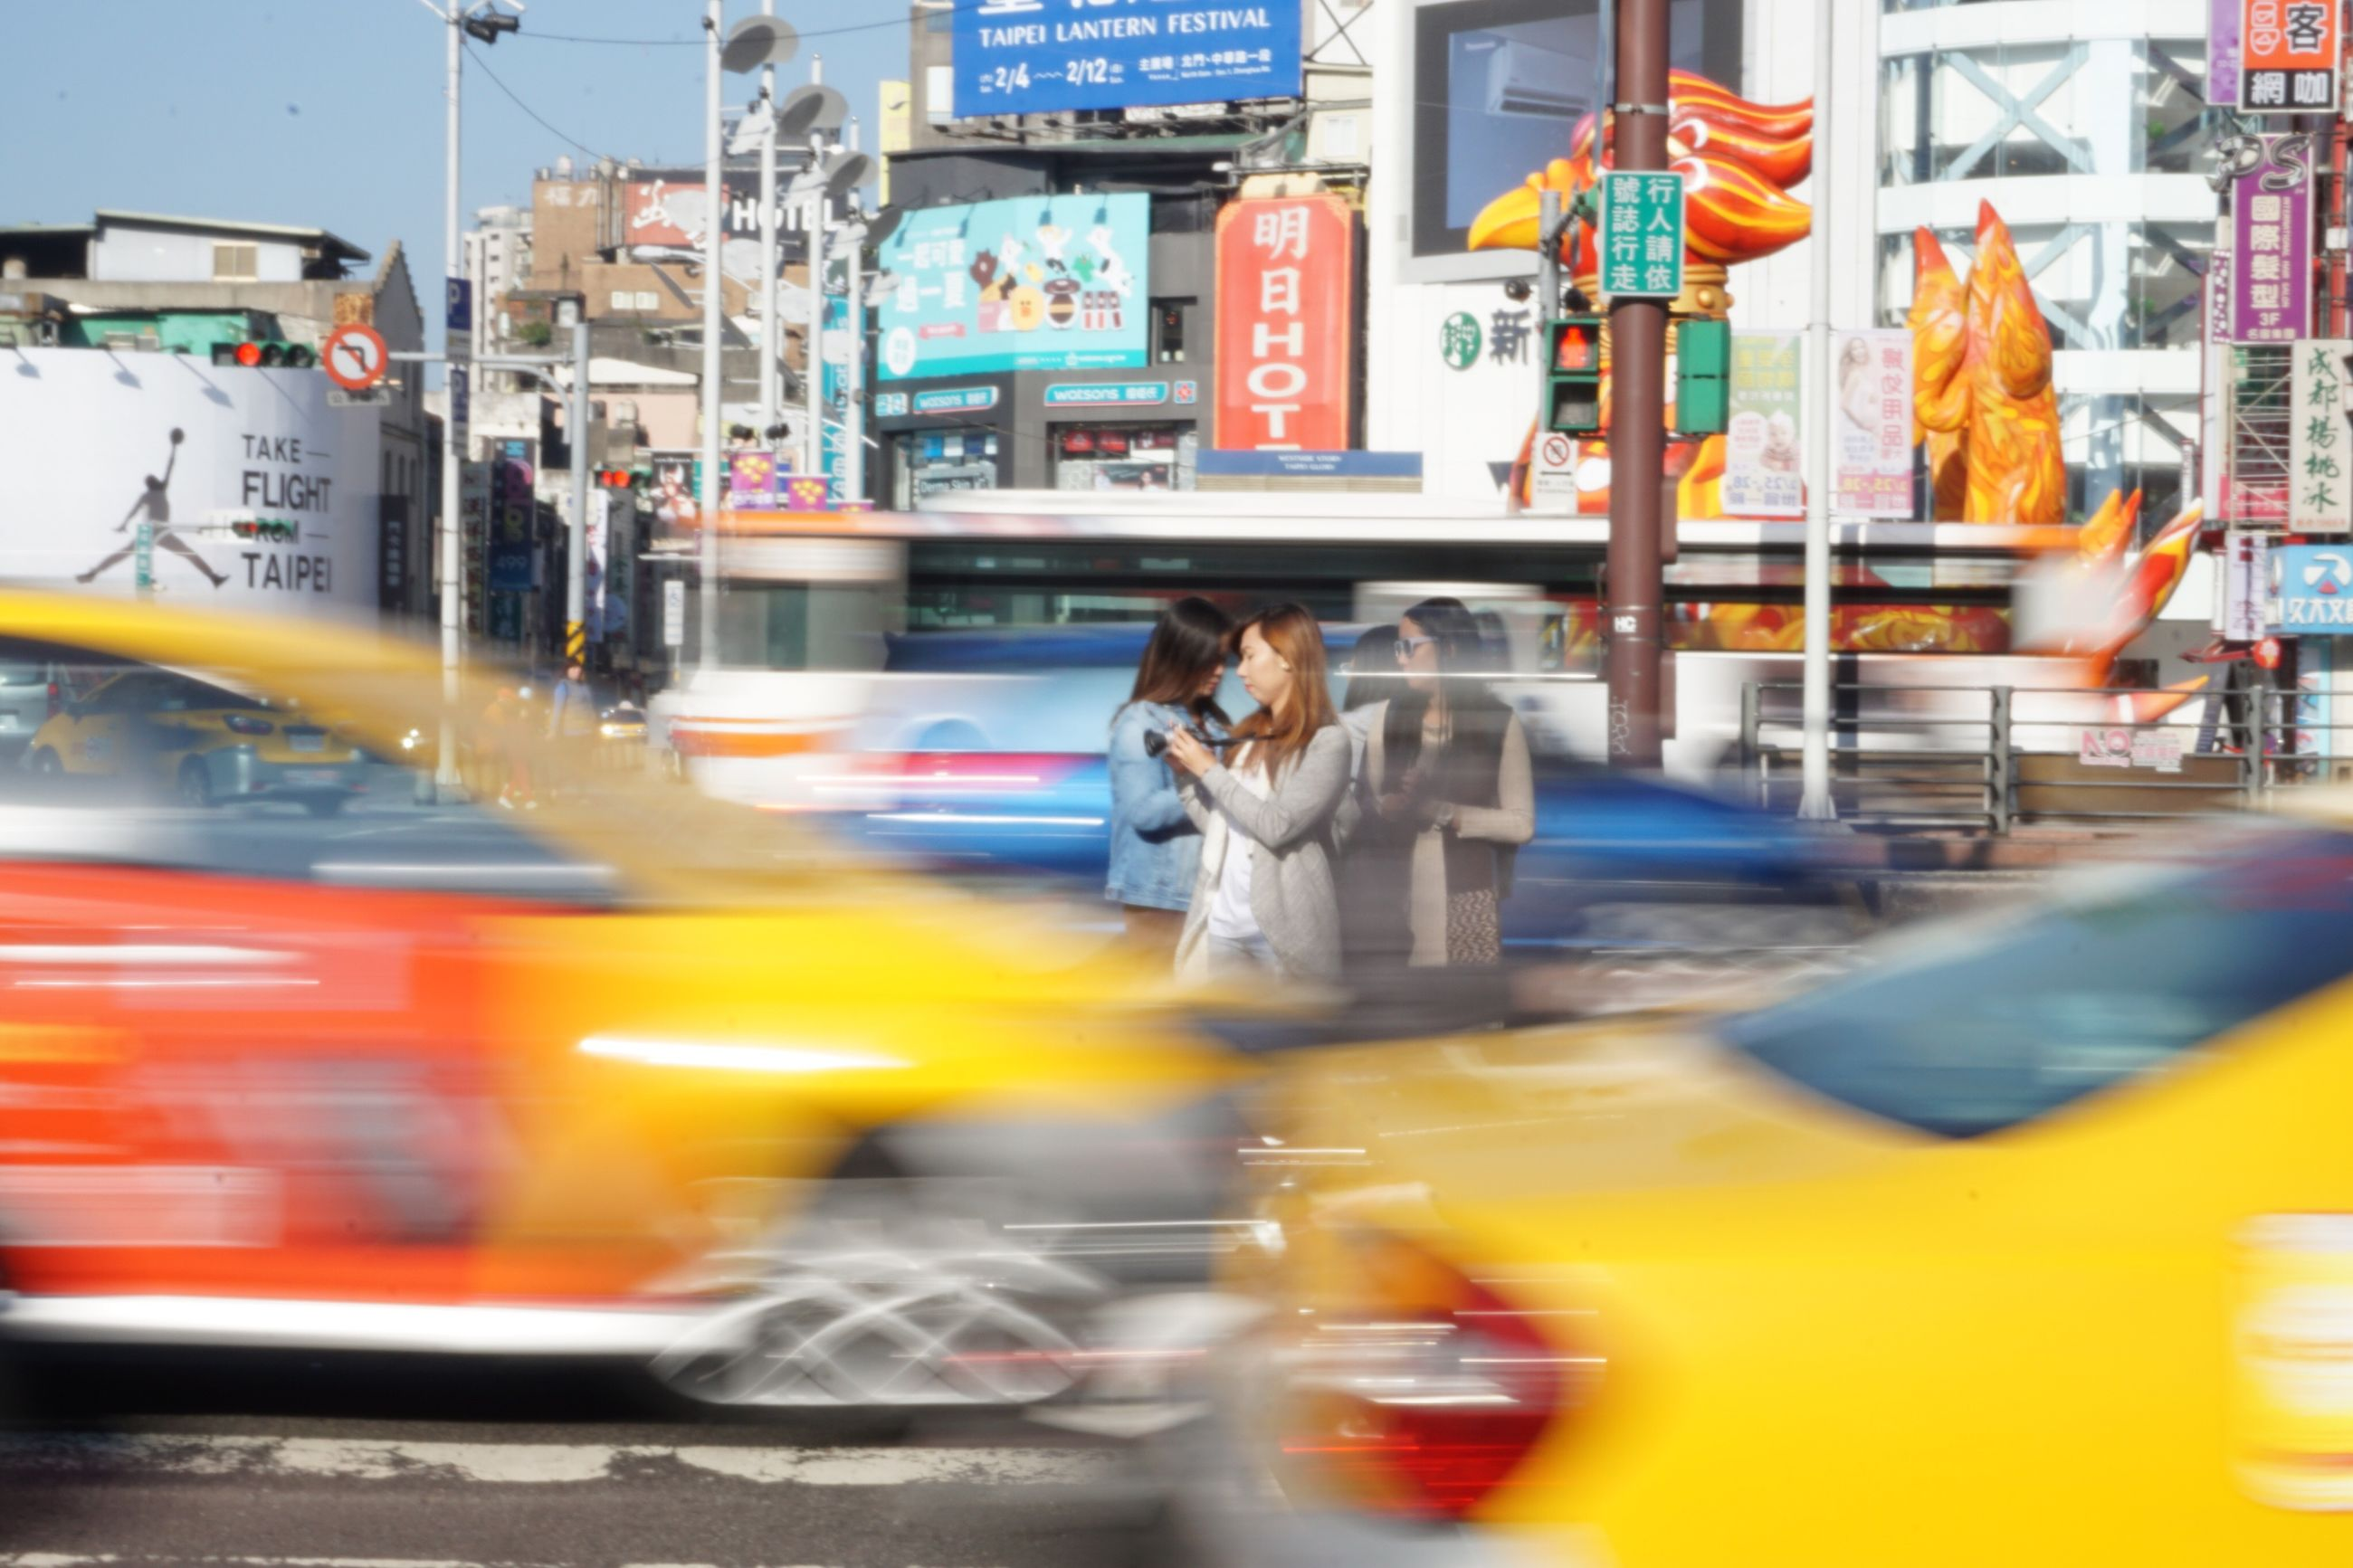 city, blurred motion, speed, car, city life, full length, public transportation, people, outdoors, young adult, adults only, day, adult